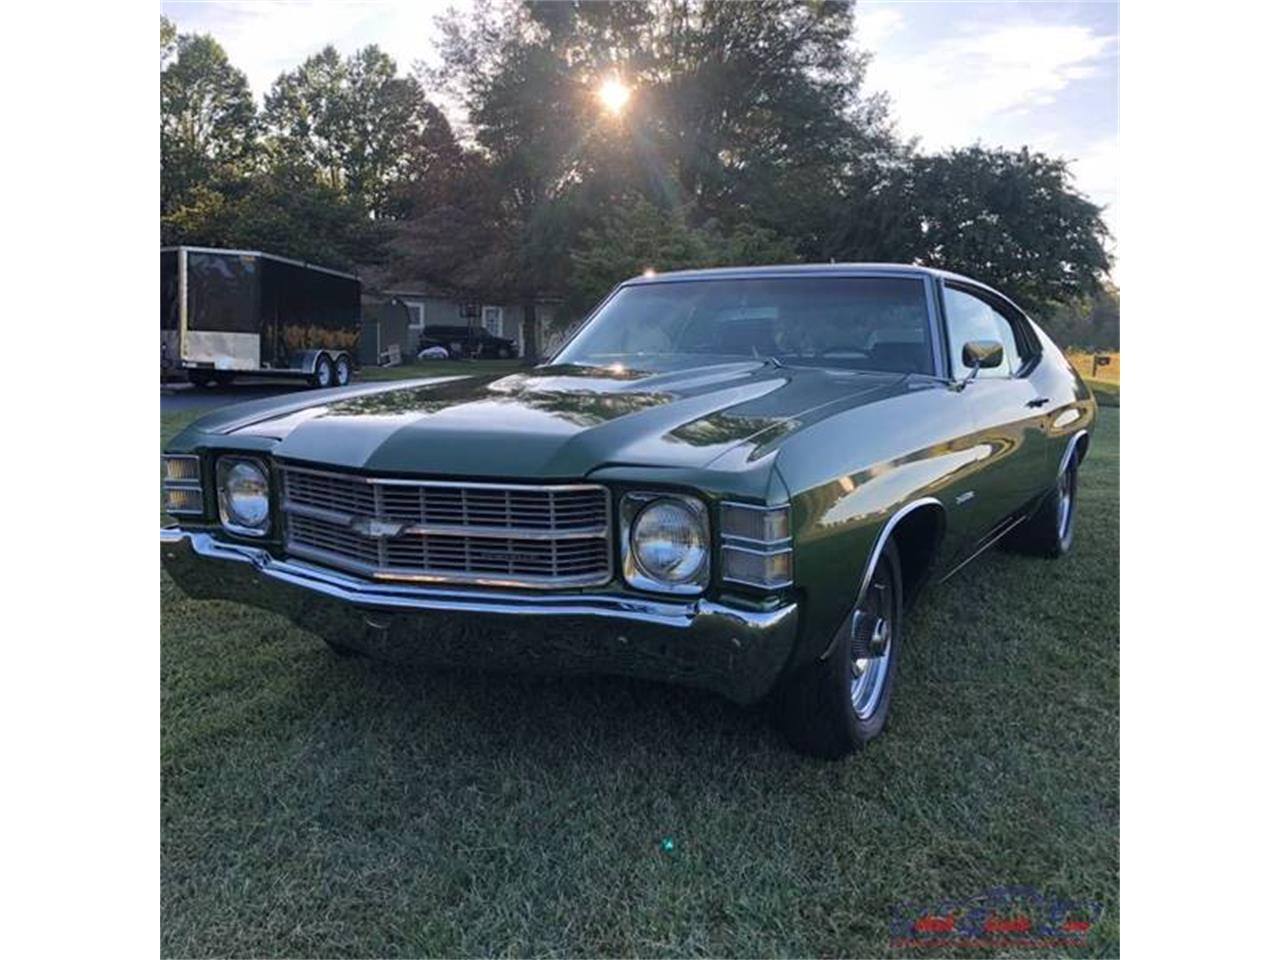 1971 Chevrolet Chevelle Malibu (CC-1353453) for sale in Hiram, Georgia